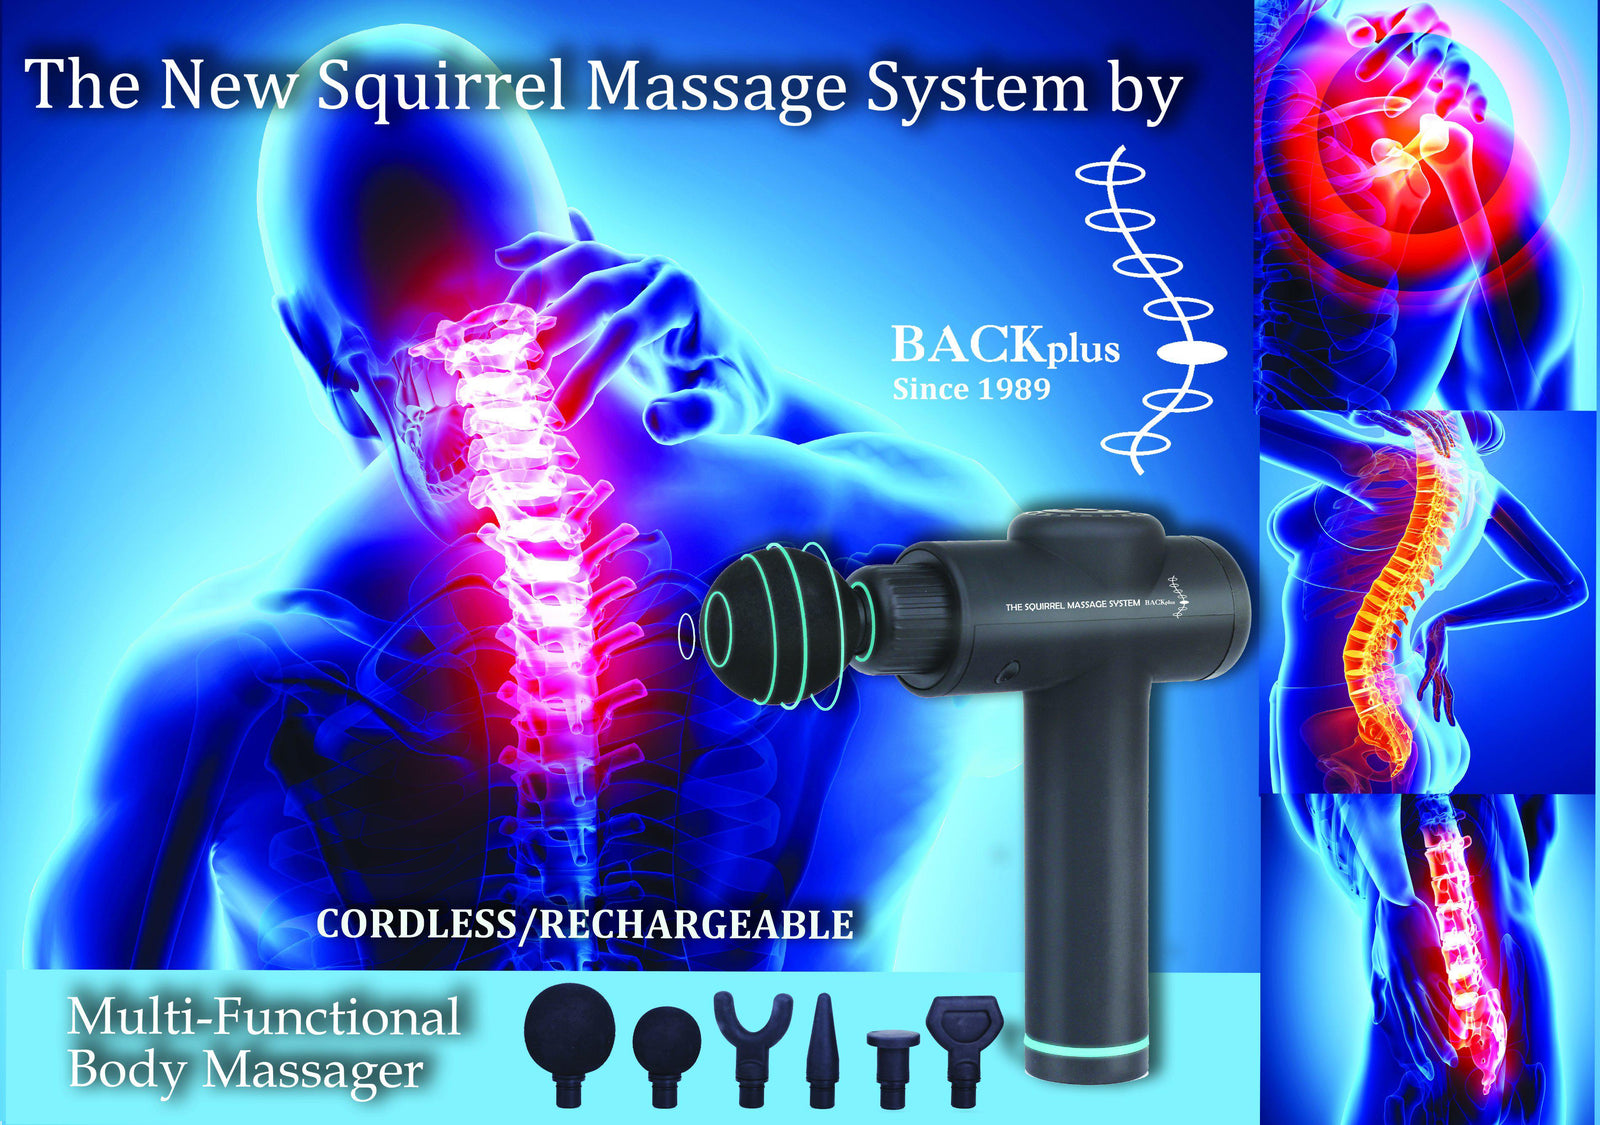 New Squirrel Massage System by BACKplus-Redfern.ent